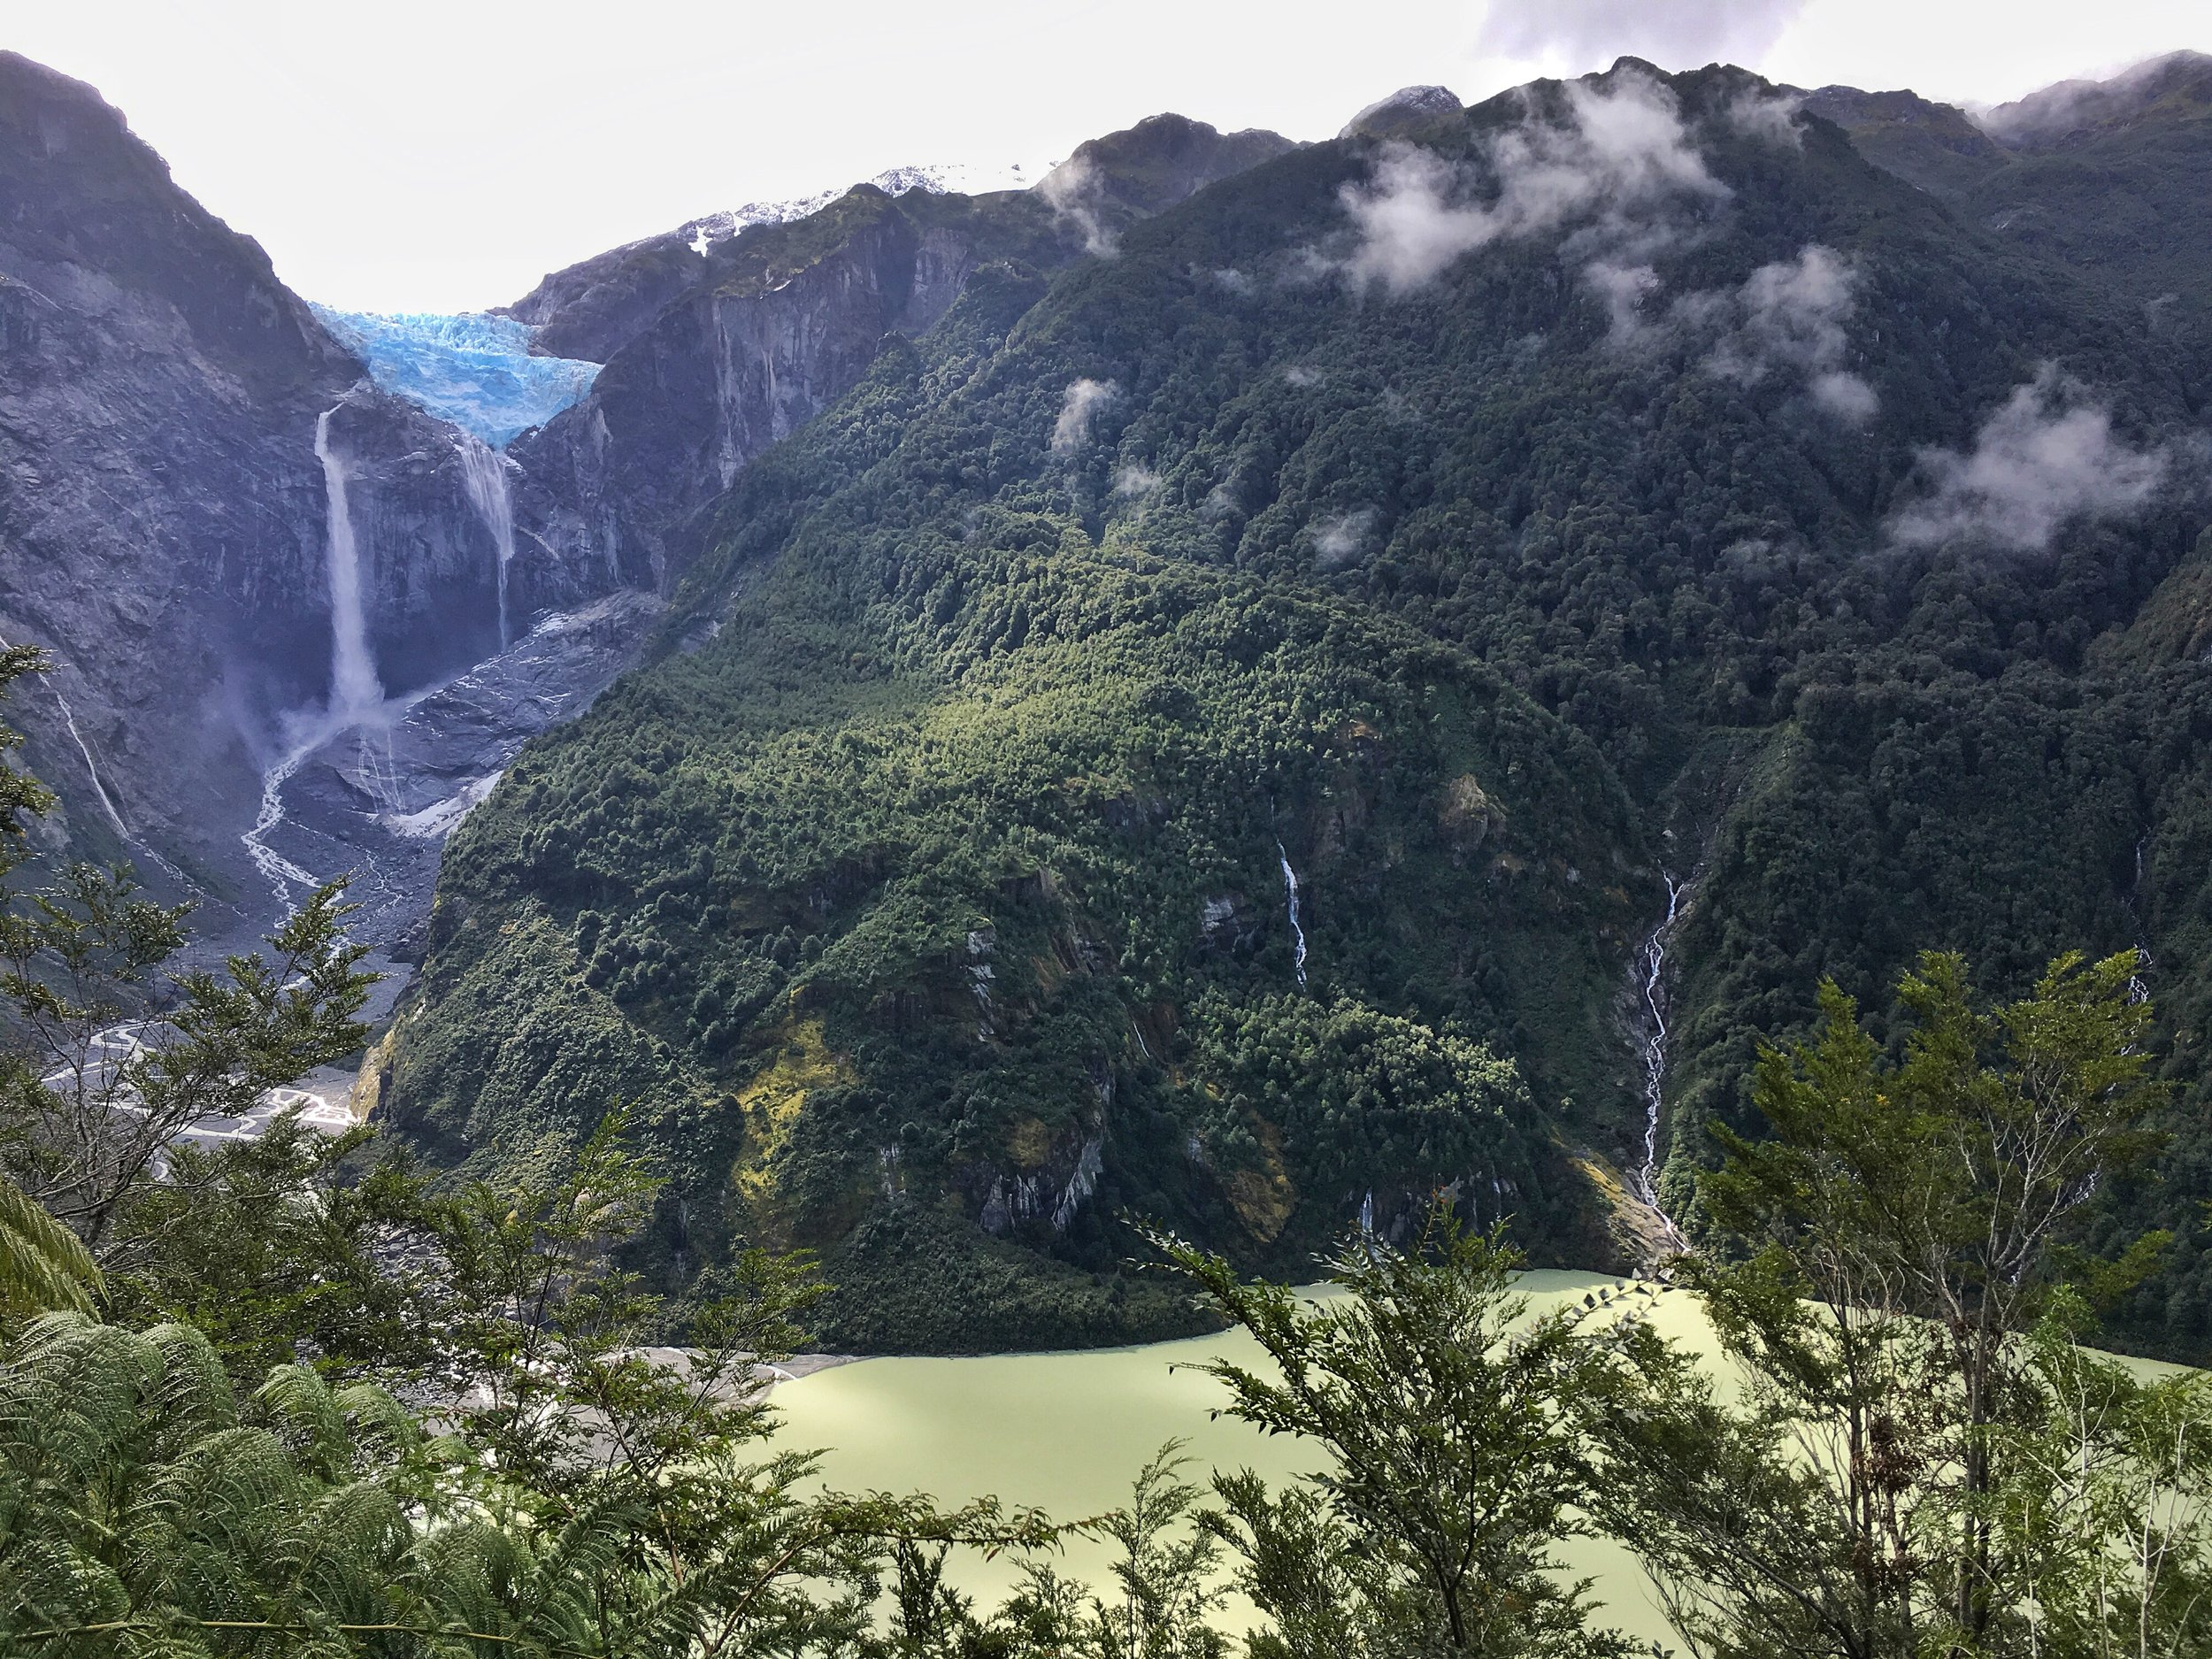 View from the Mirador in Queulat National Park